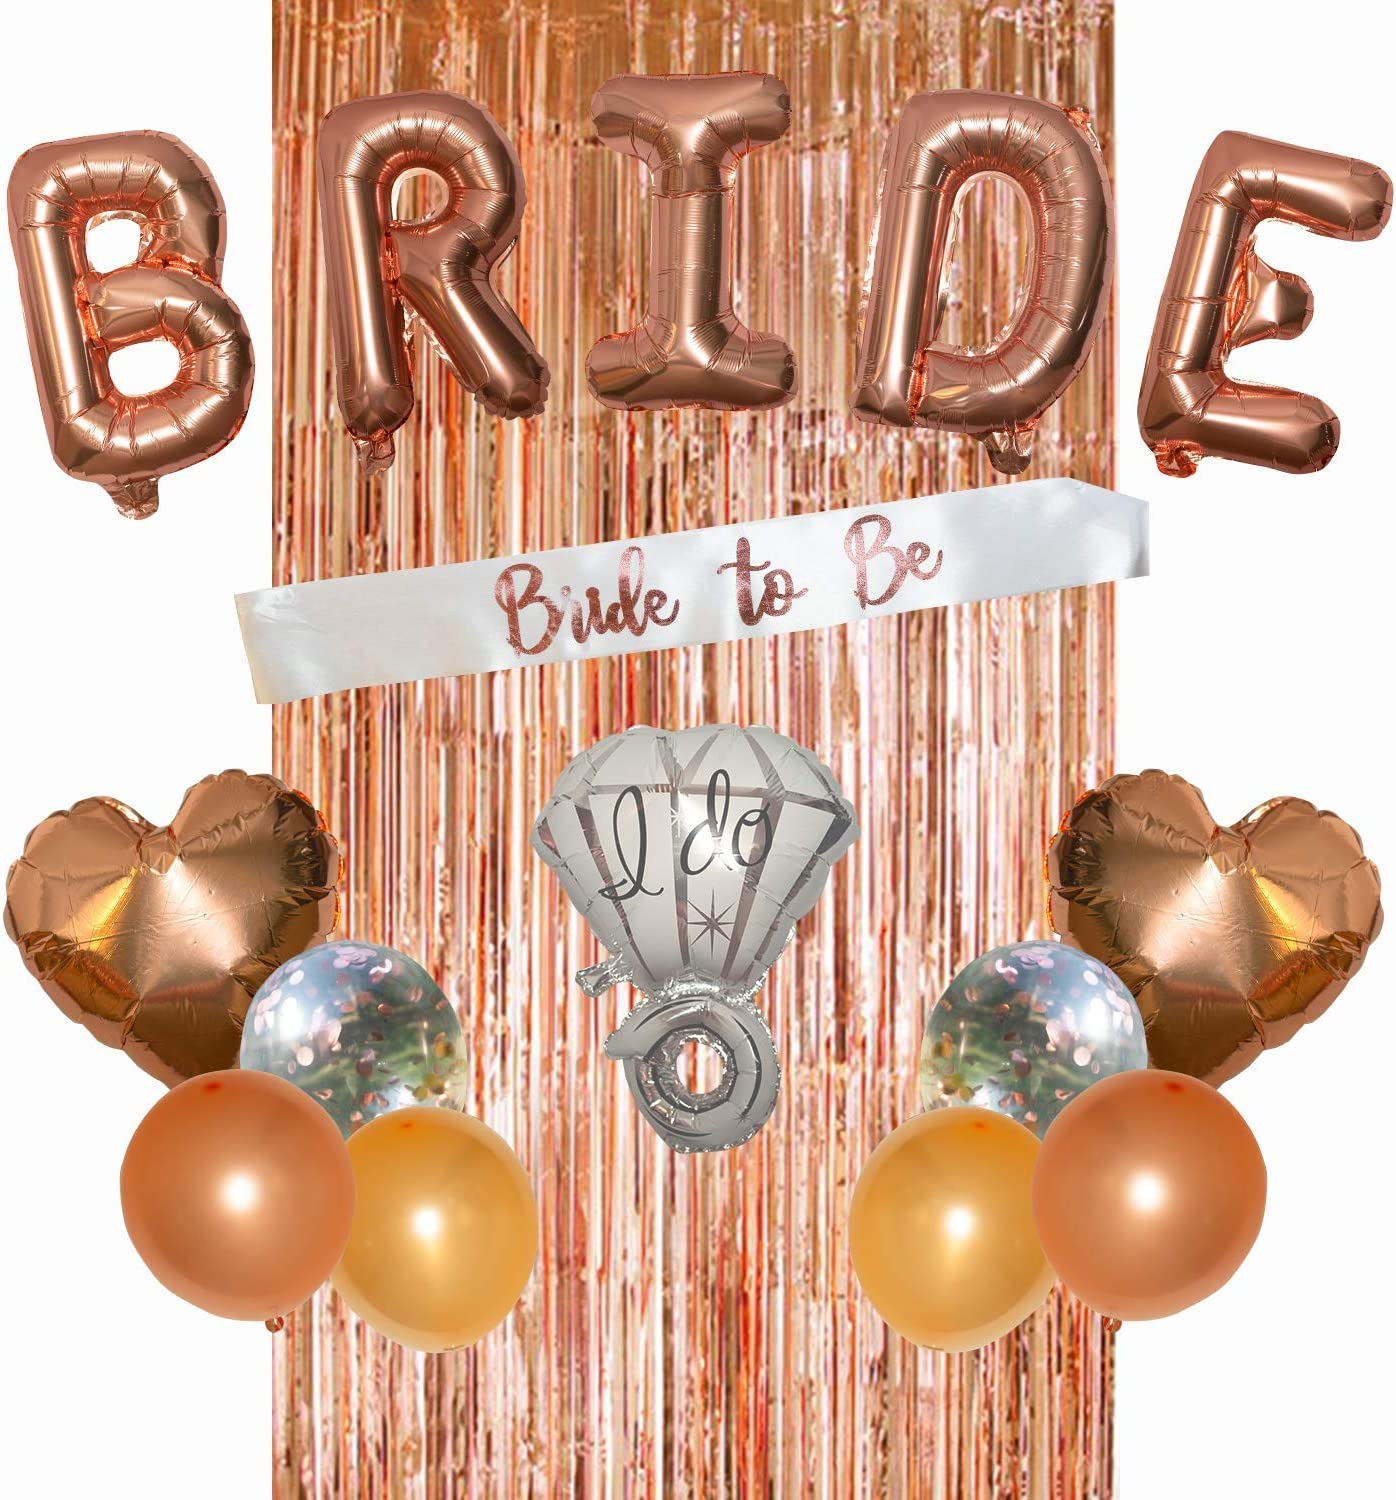 VALKEA Bachelorette Party Decorations Kit - Classy Bachelorette Party Supplies - Cute Bridal Shower Decoration Set with Rose Gold Foil Curtain, Confetti Balloons, Bride to Be Sash & Photo Booth Props